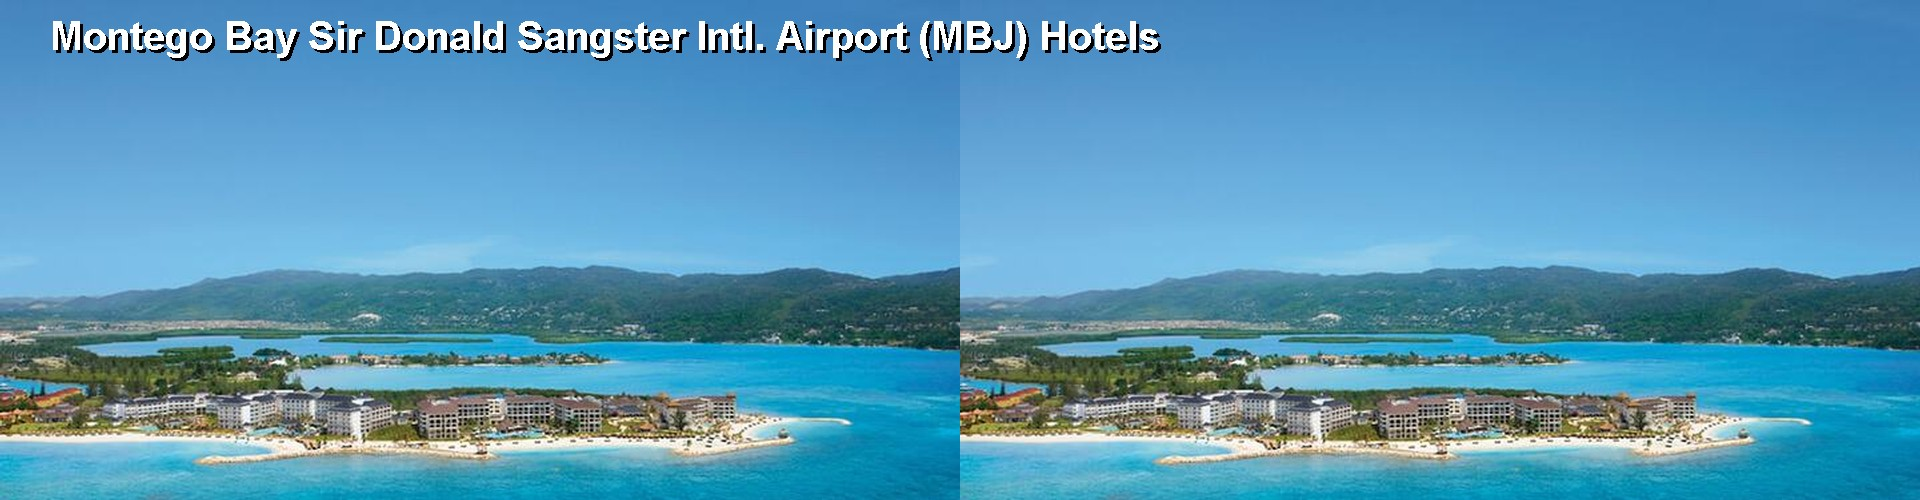 5 Best Hotels near Montego Bay Sir Donald Sangster Intl. Airport (MBJ)